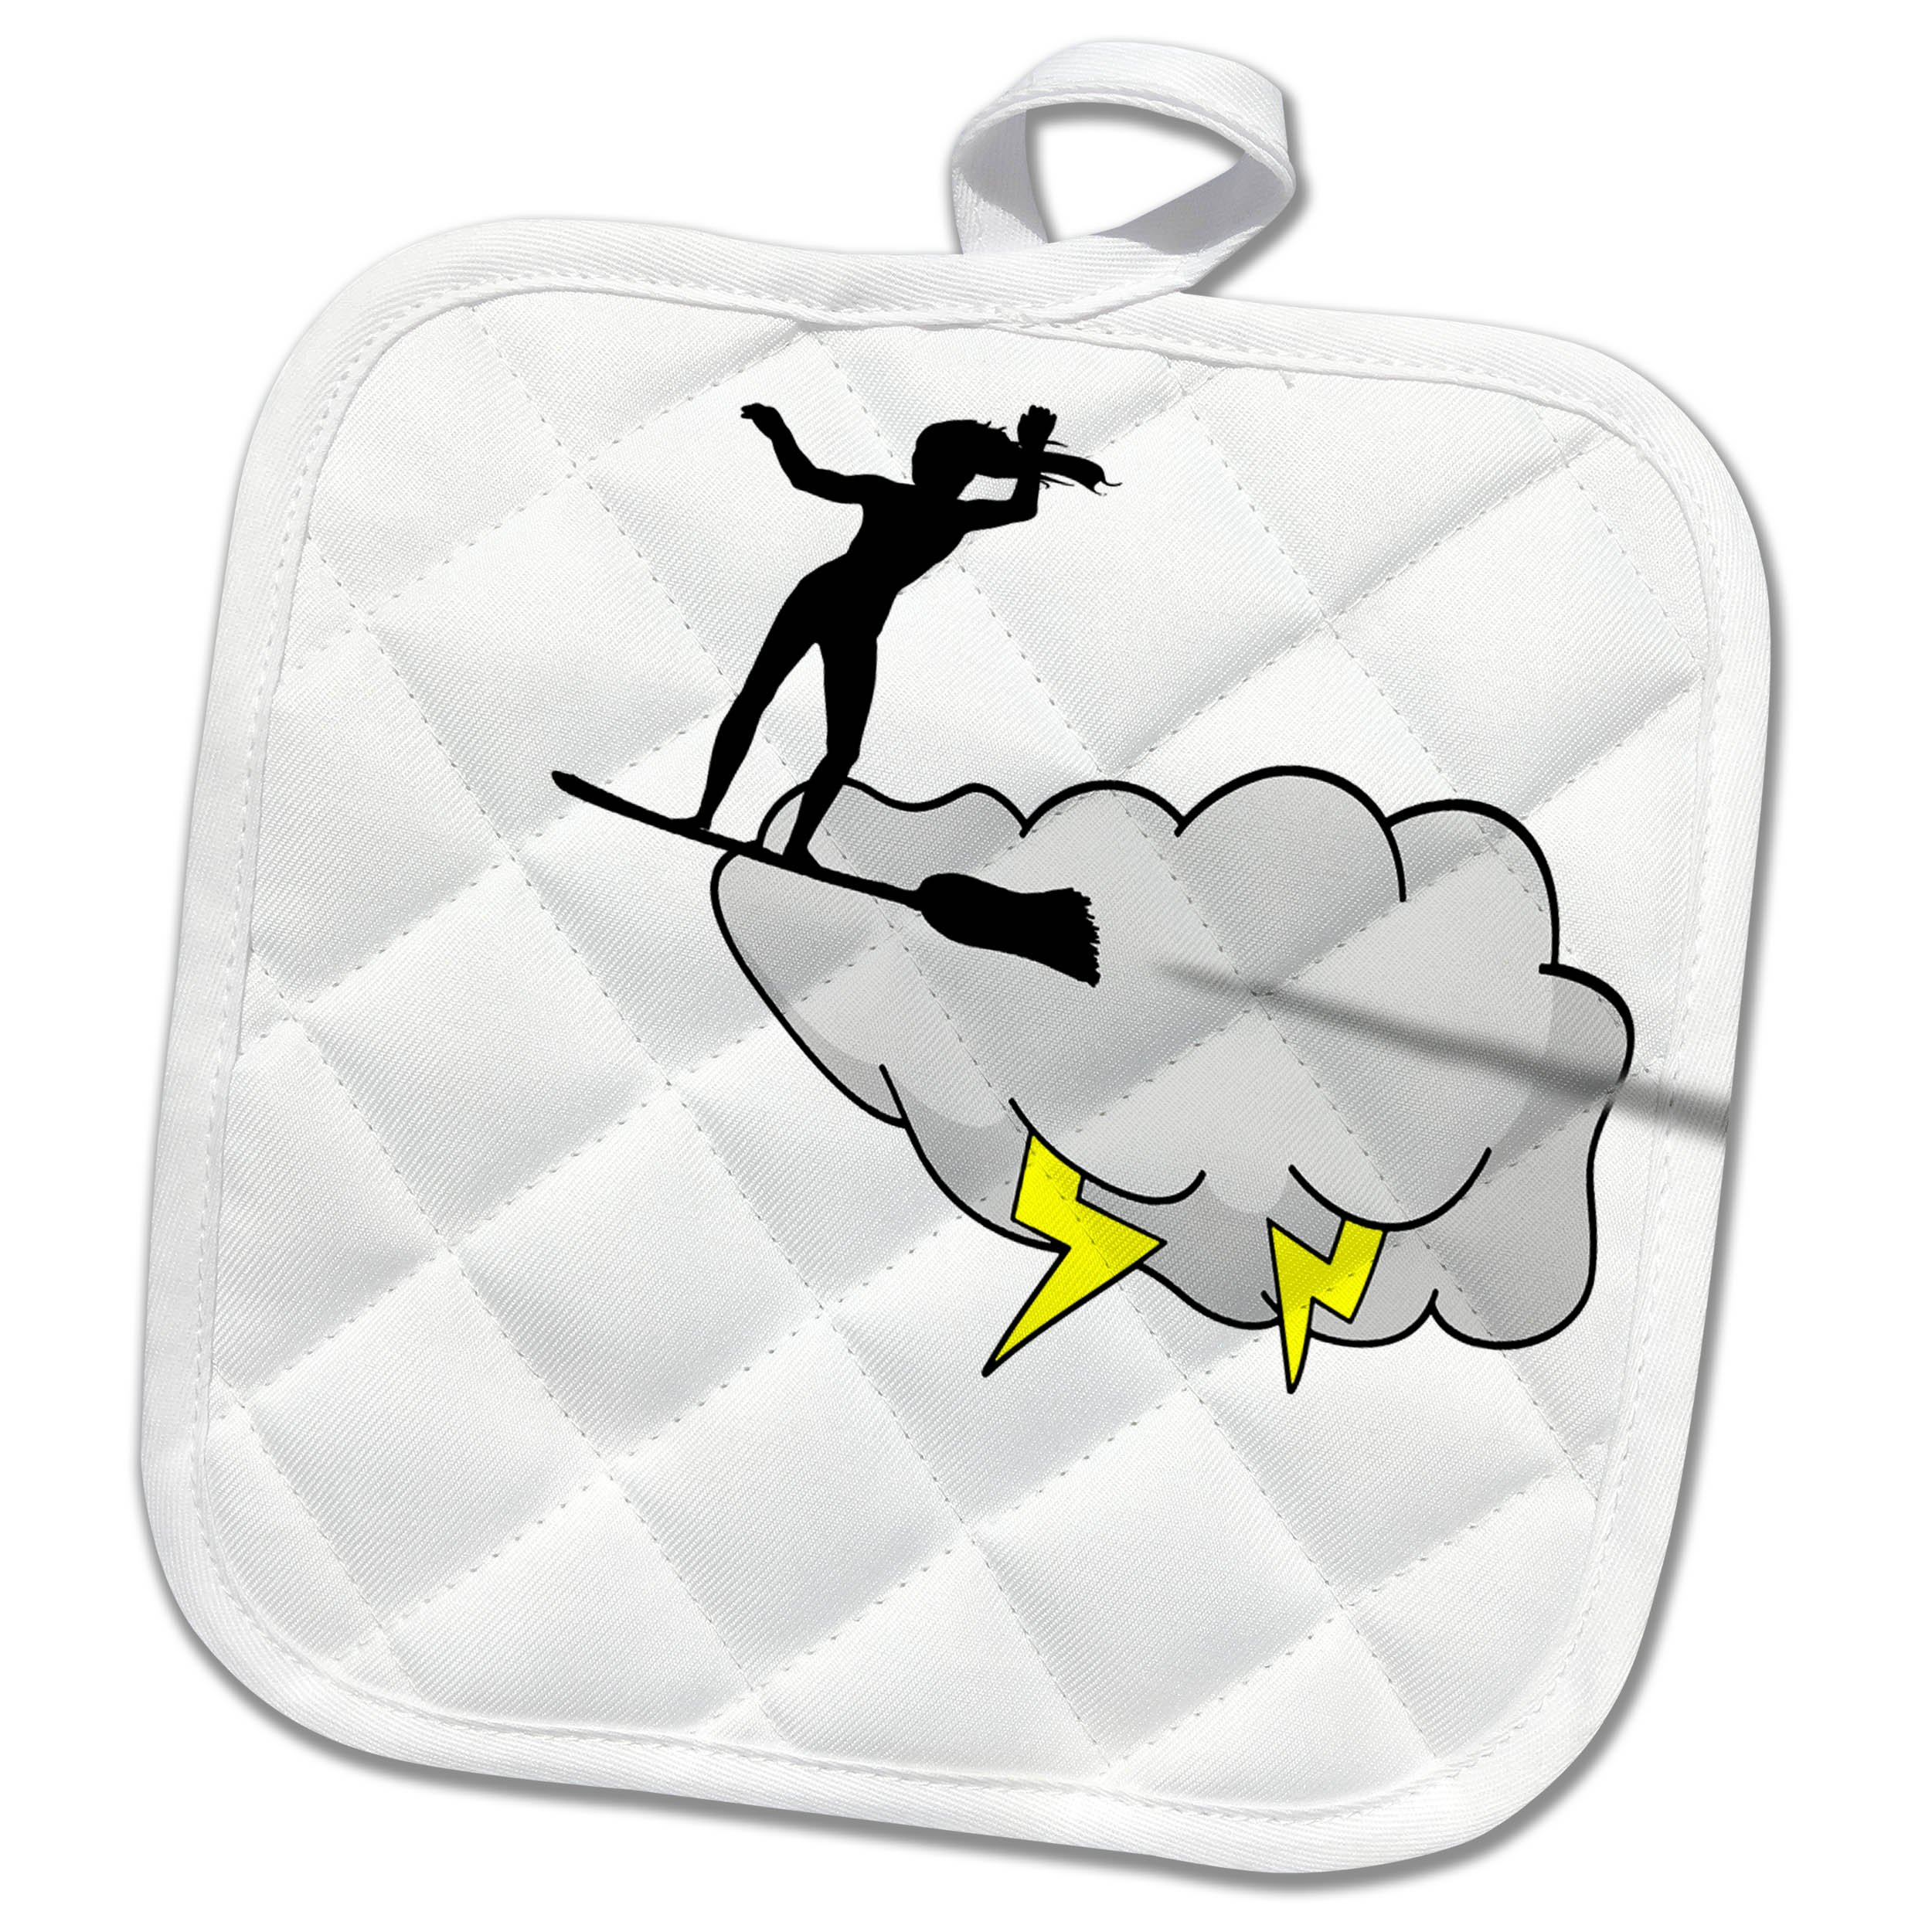 3dRose Alexis Design - Beach, Sea, Surf - Witch surfs sky on broom stick. Free space for the custom text - 8x8 Potholder (phl_271754_1)